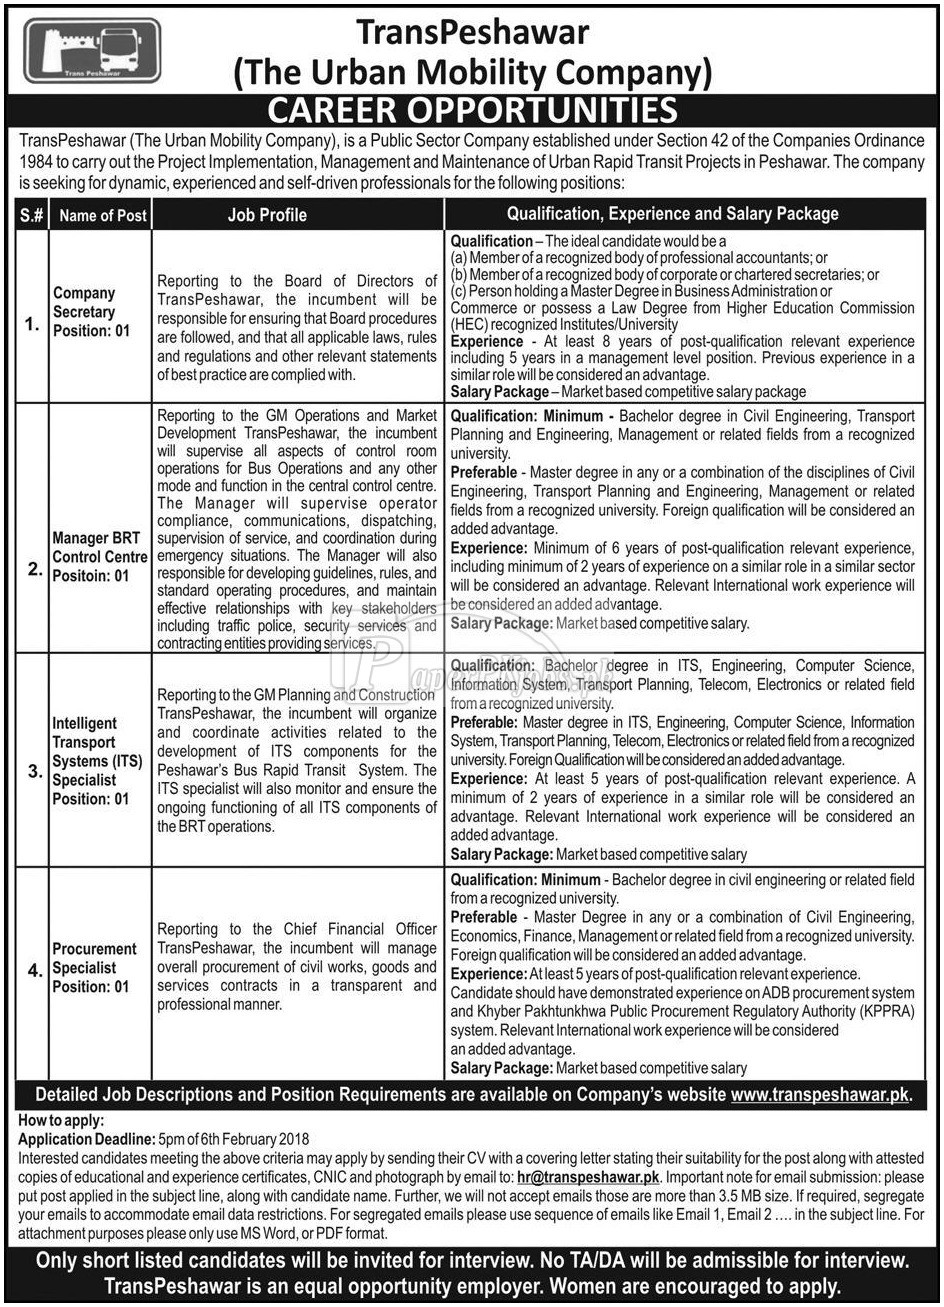 TransPeshawar The Urban Mobility Company Jobs 2018